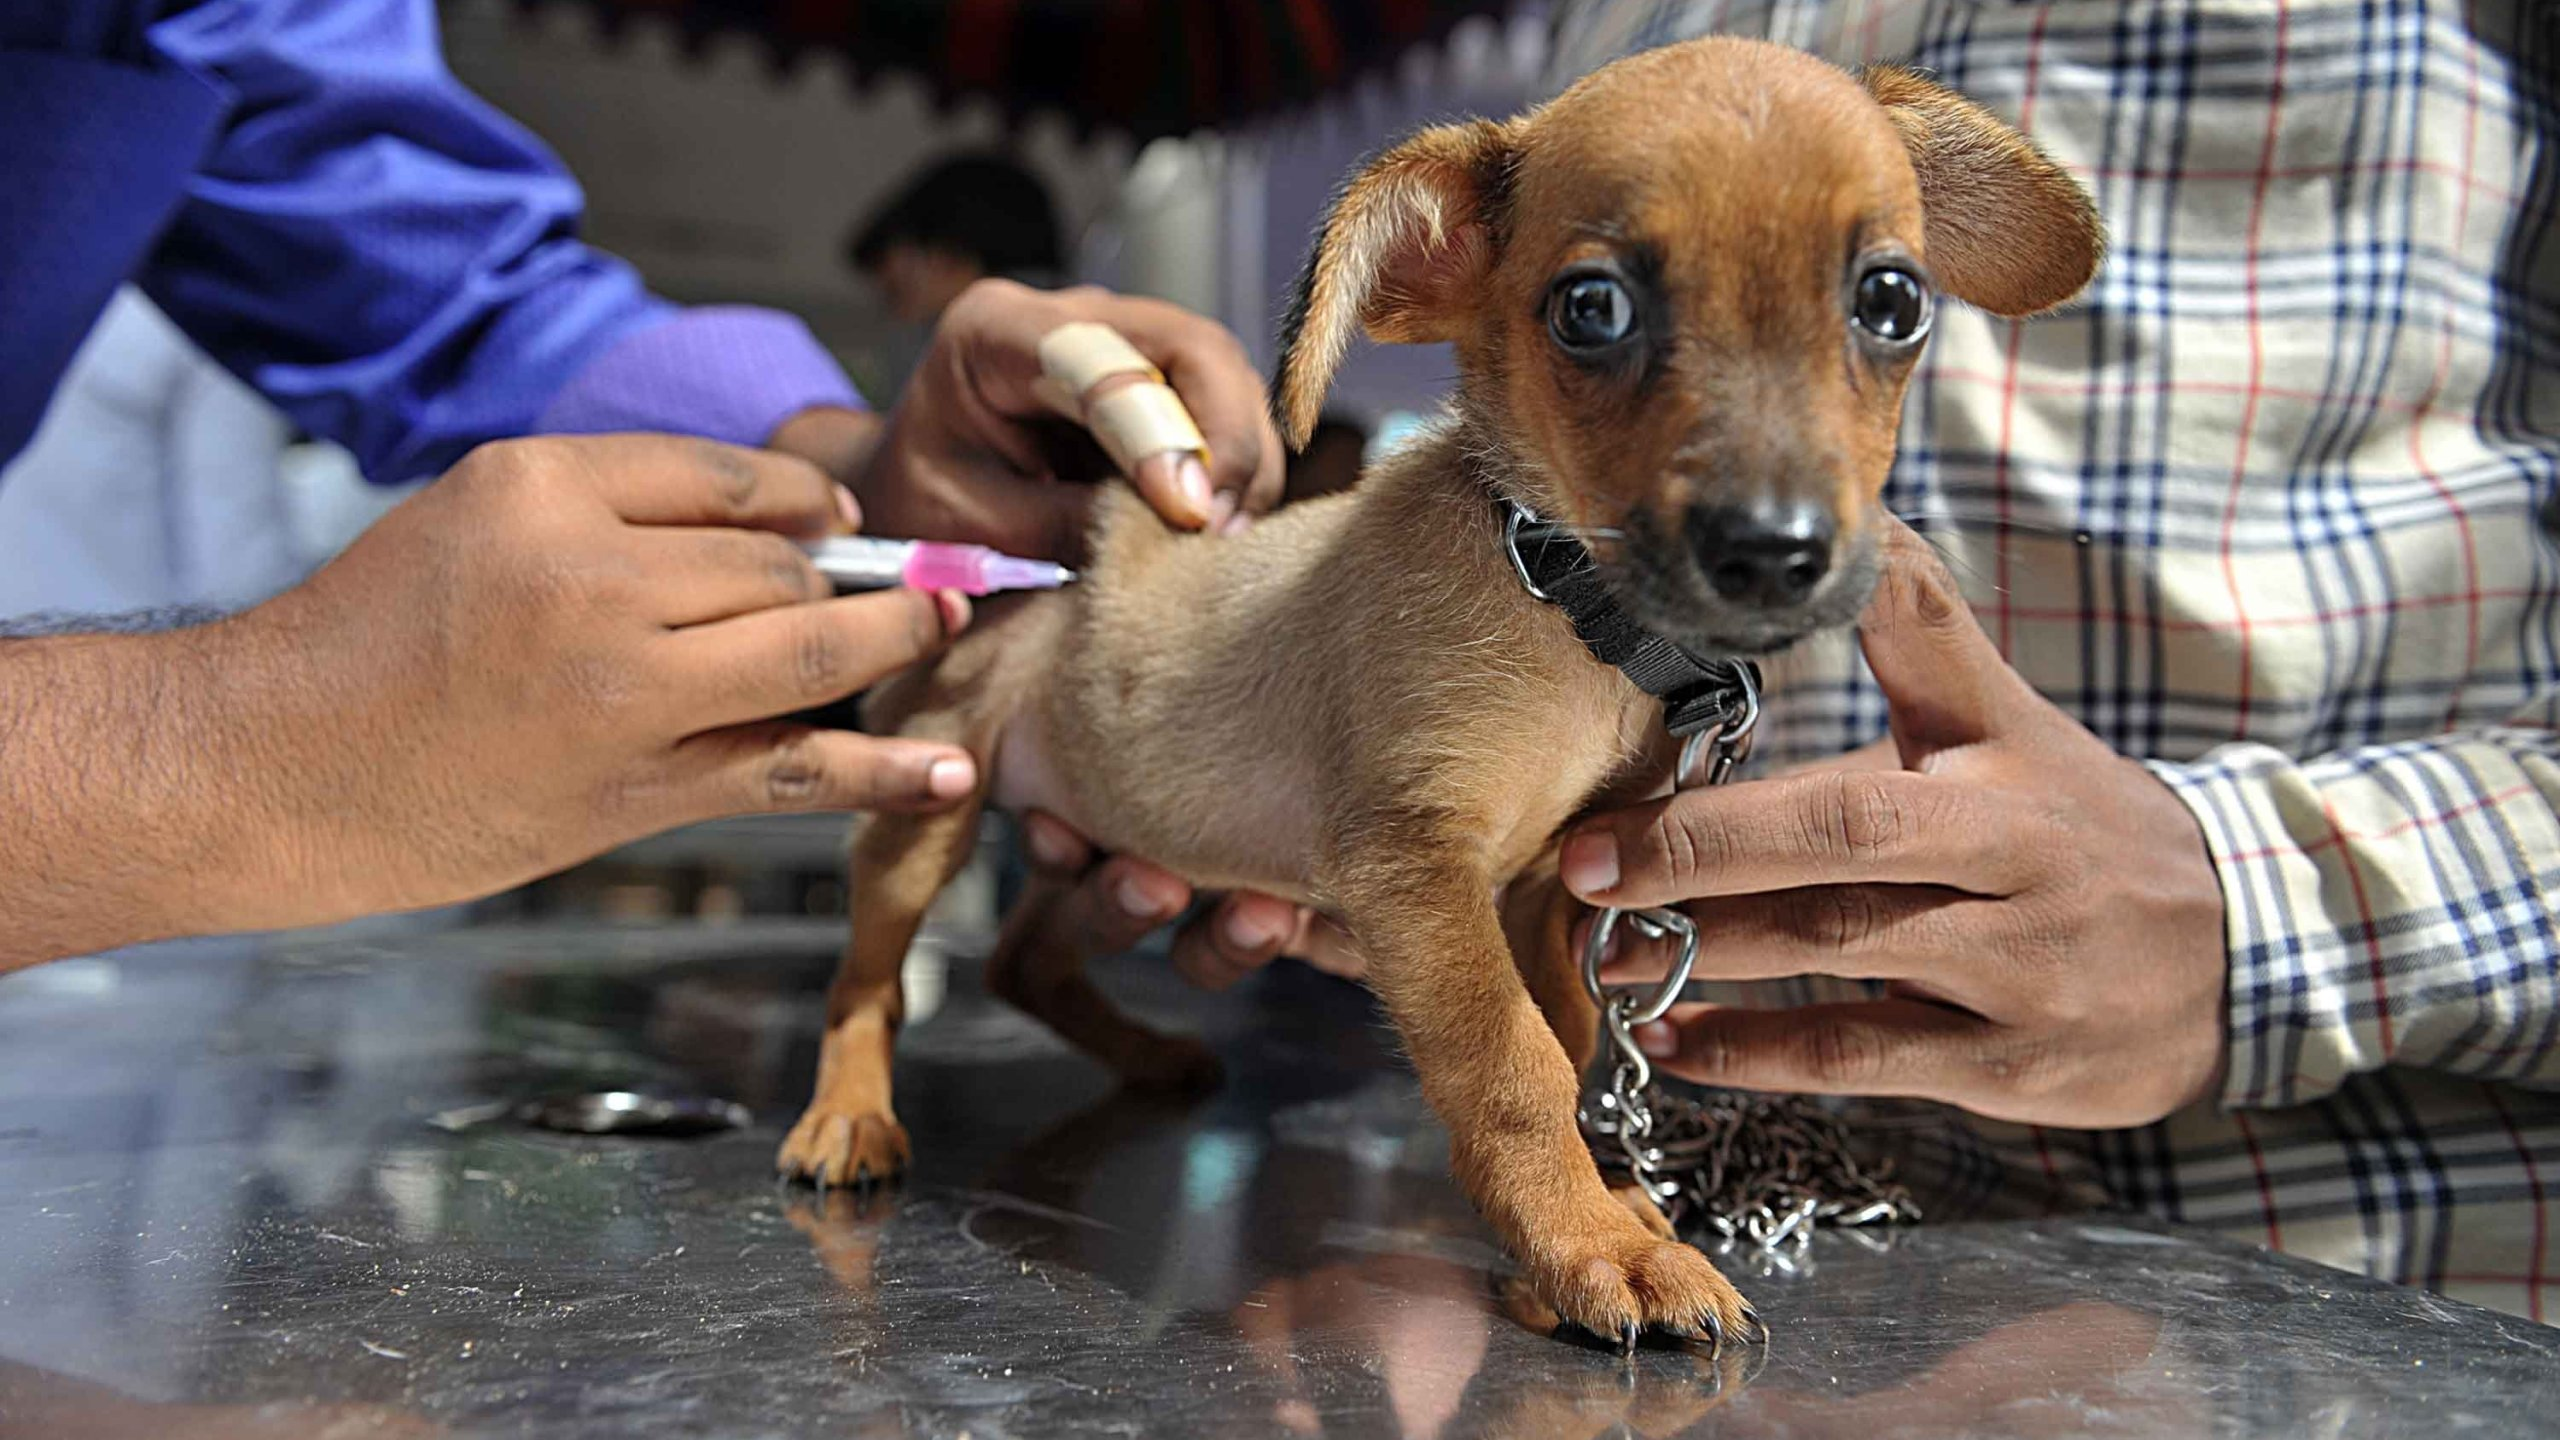 British vets are concerned about a dramatic drop in pet vaccination levels. (Credit: Noah Seelam/AFP/Getty Images)